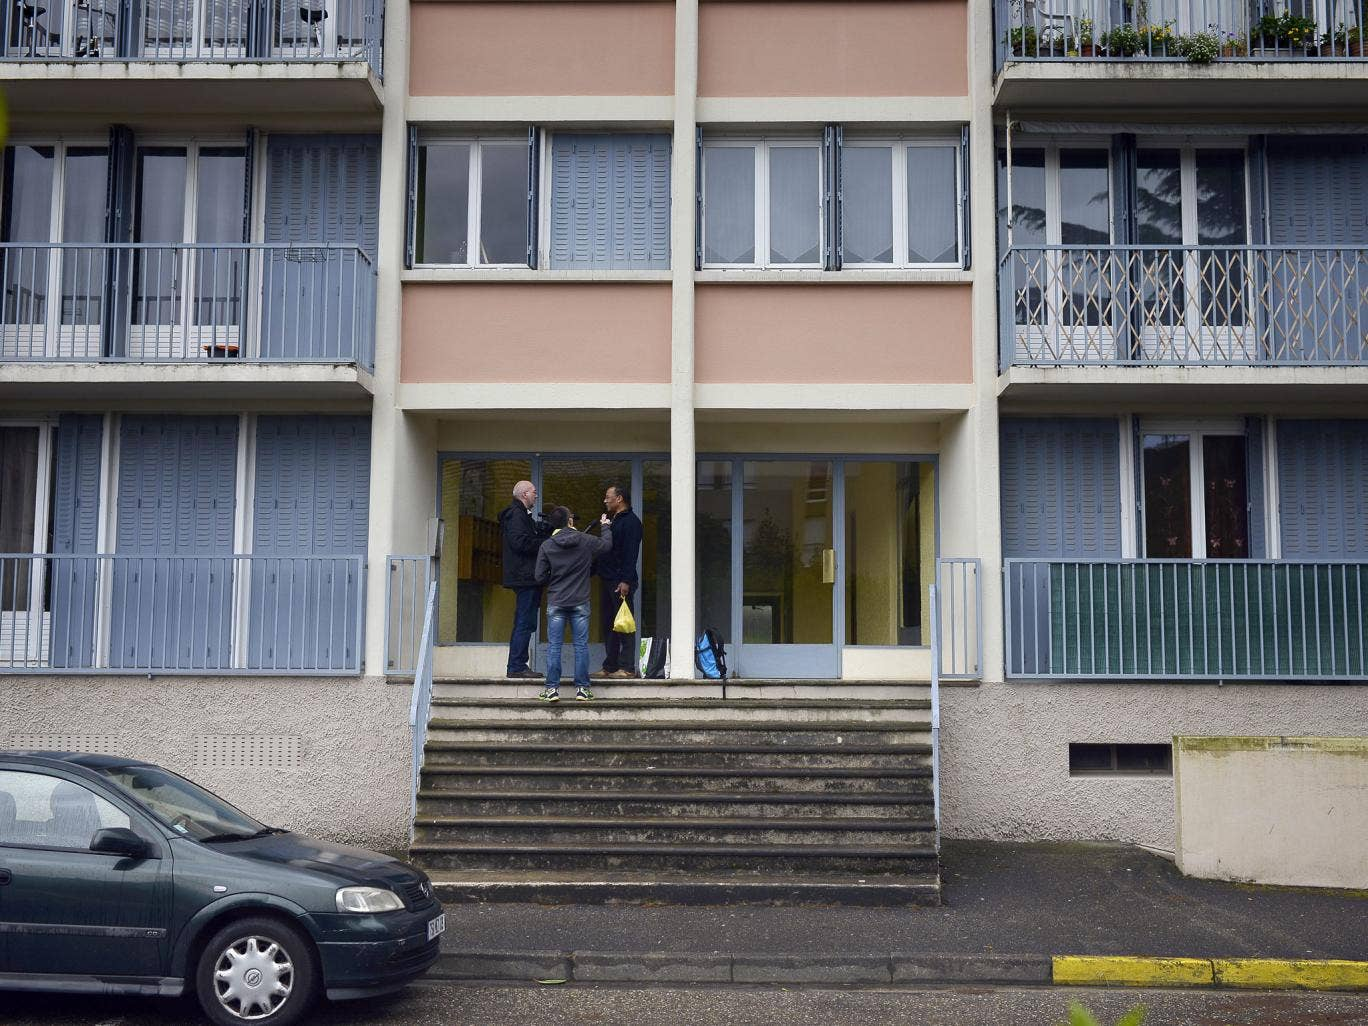 The apartment building where the bodies of two children, aged 5 and 10, were discovered